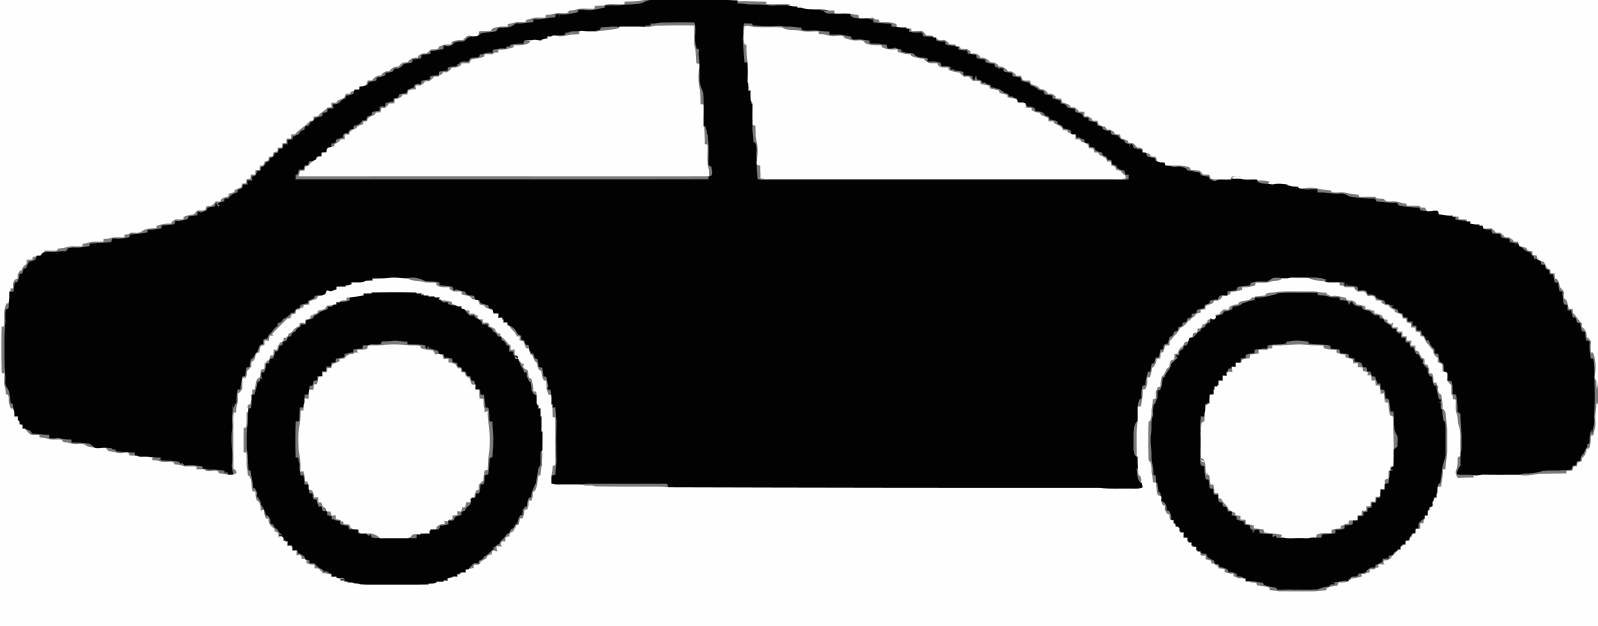 Download And Use Car Silhouet Png Clipart image #21289